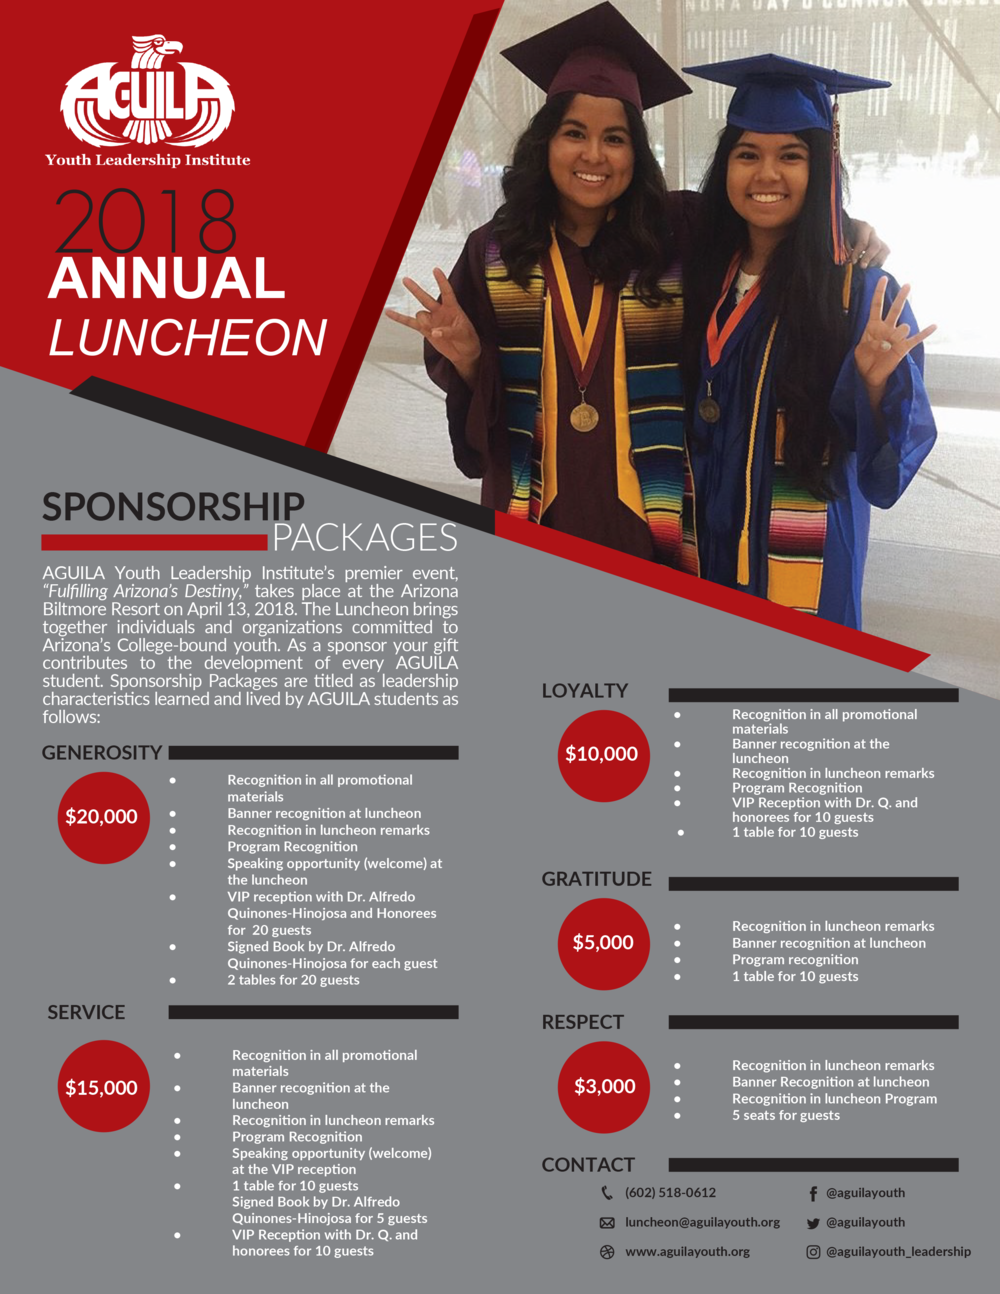 2018Luncheon_SponsorshipPackage.png